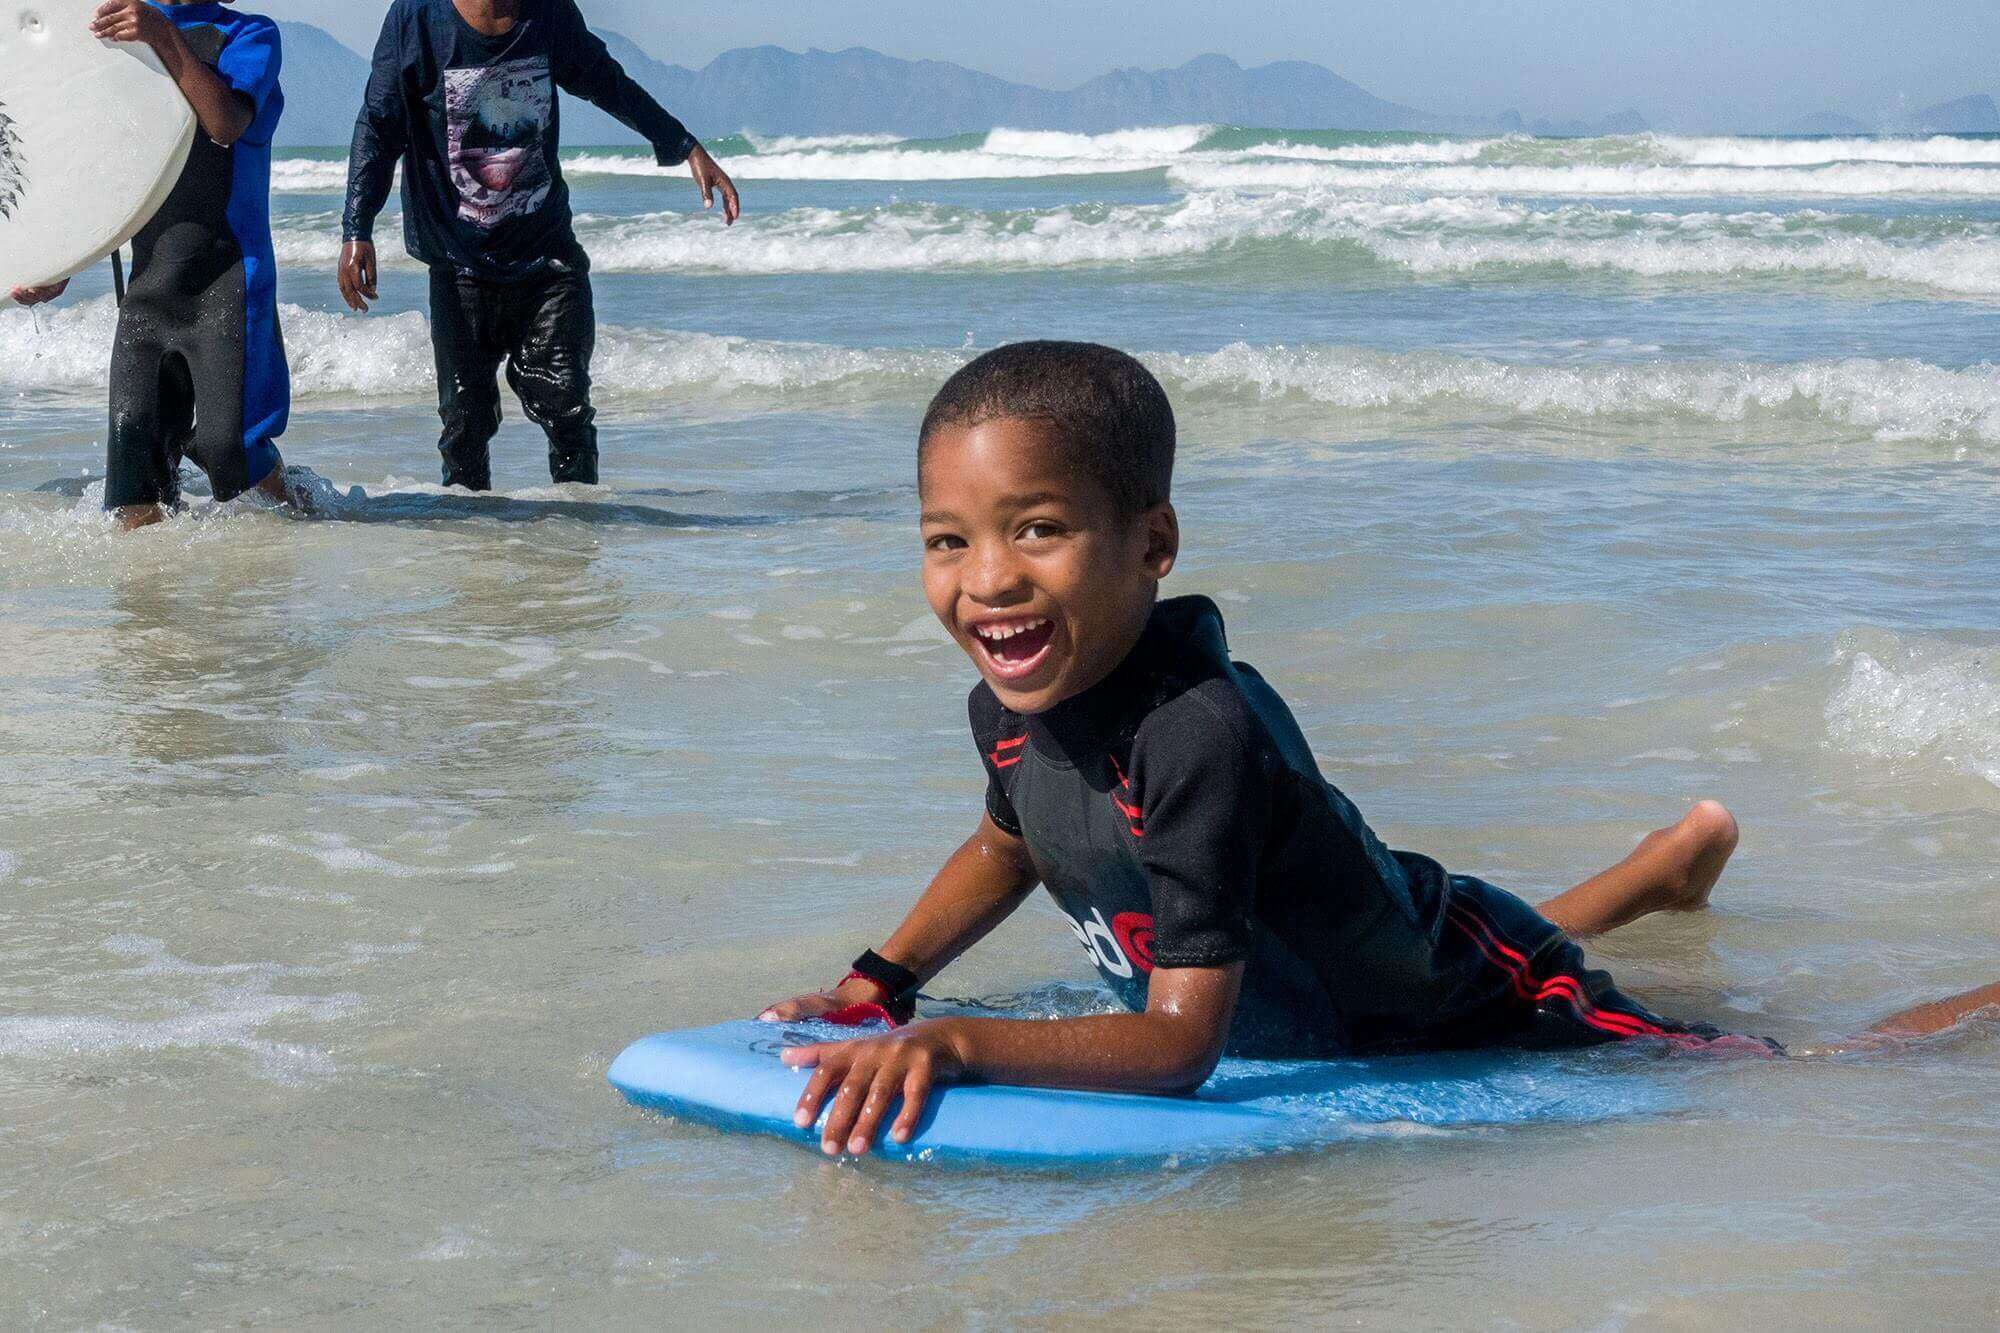 boy loves surfing